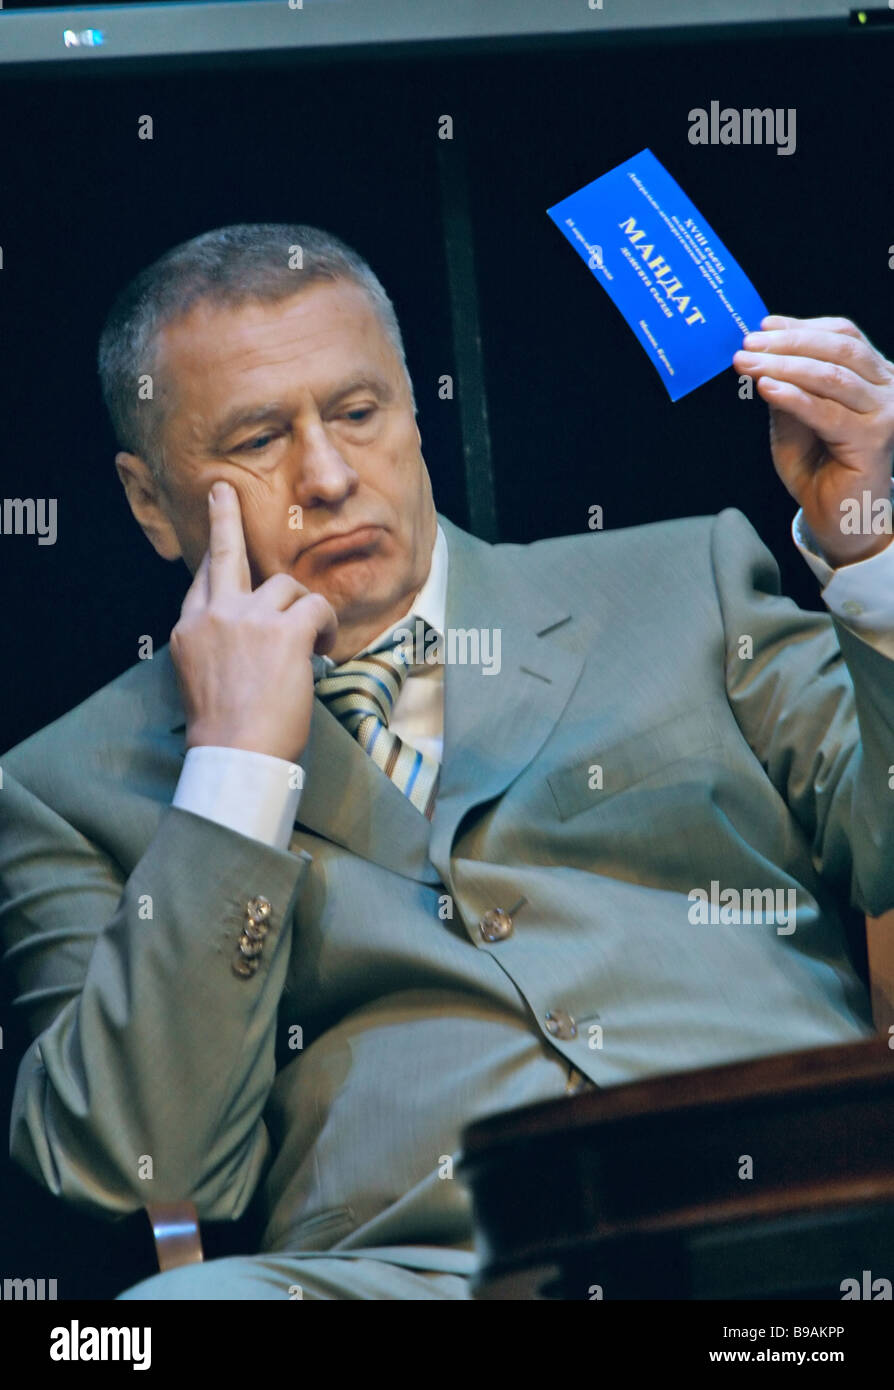 Liberal Democratic leader Vladimir Zhirinovsky votes during the 18th extraordinary congress of his party timed to - Stock Image